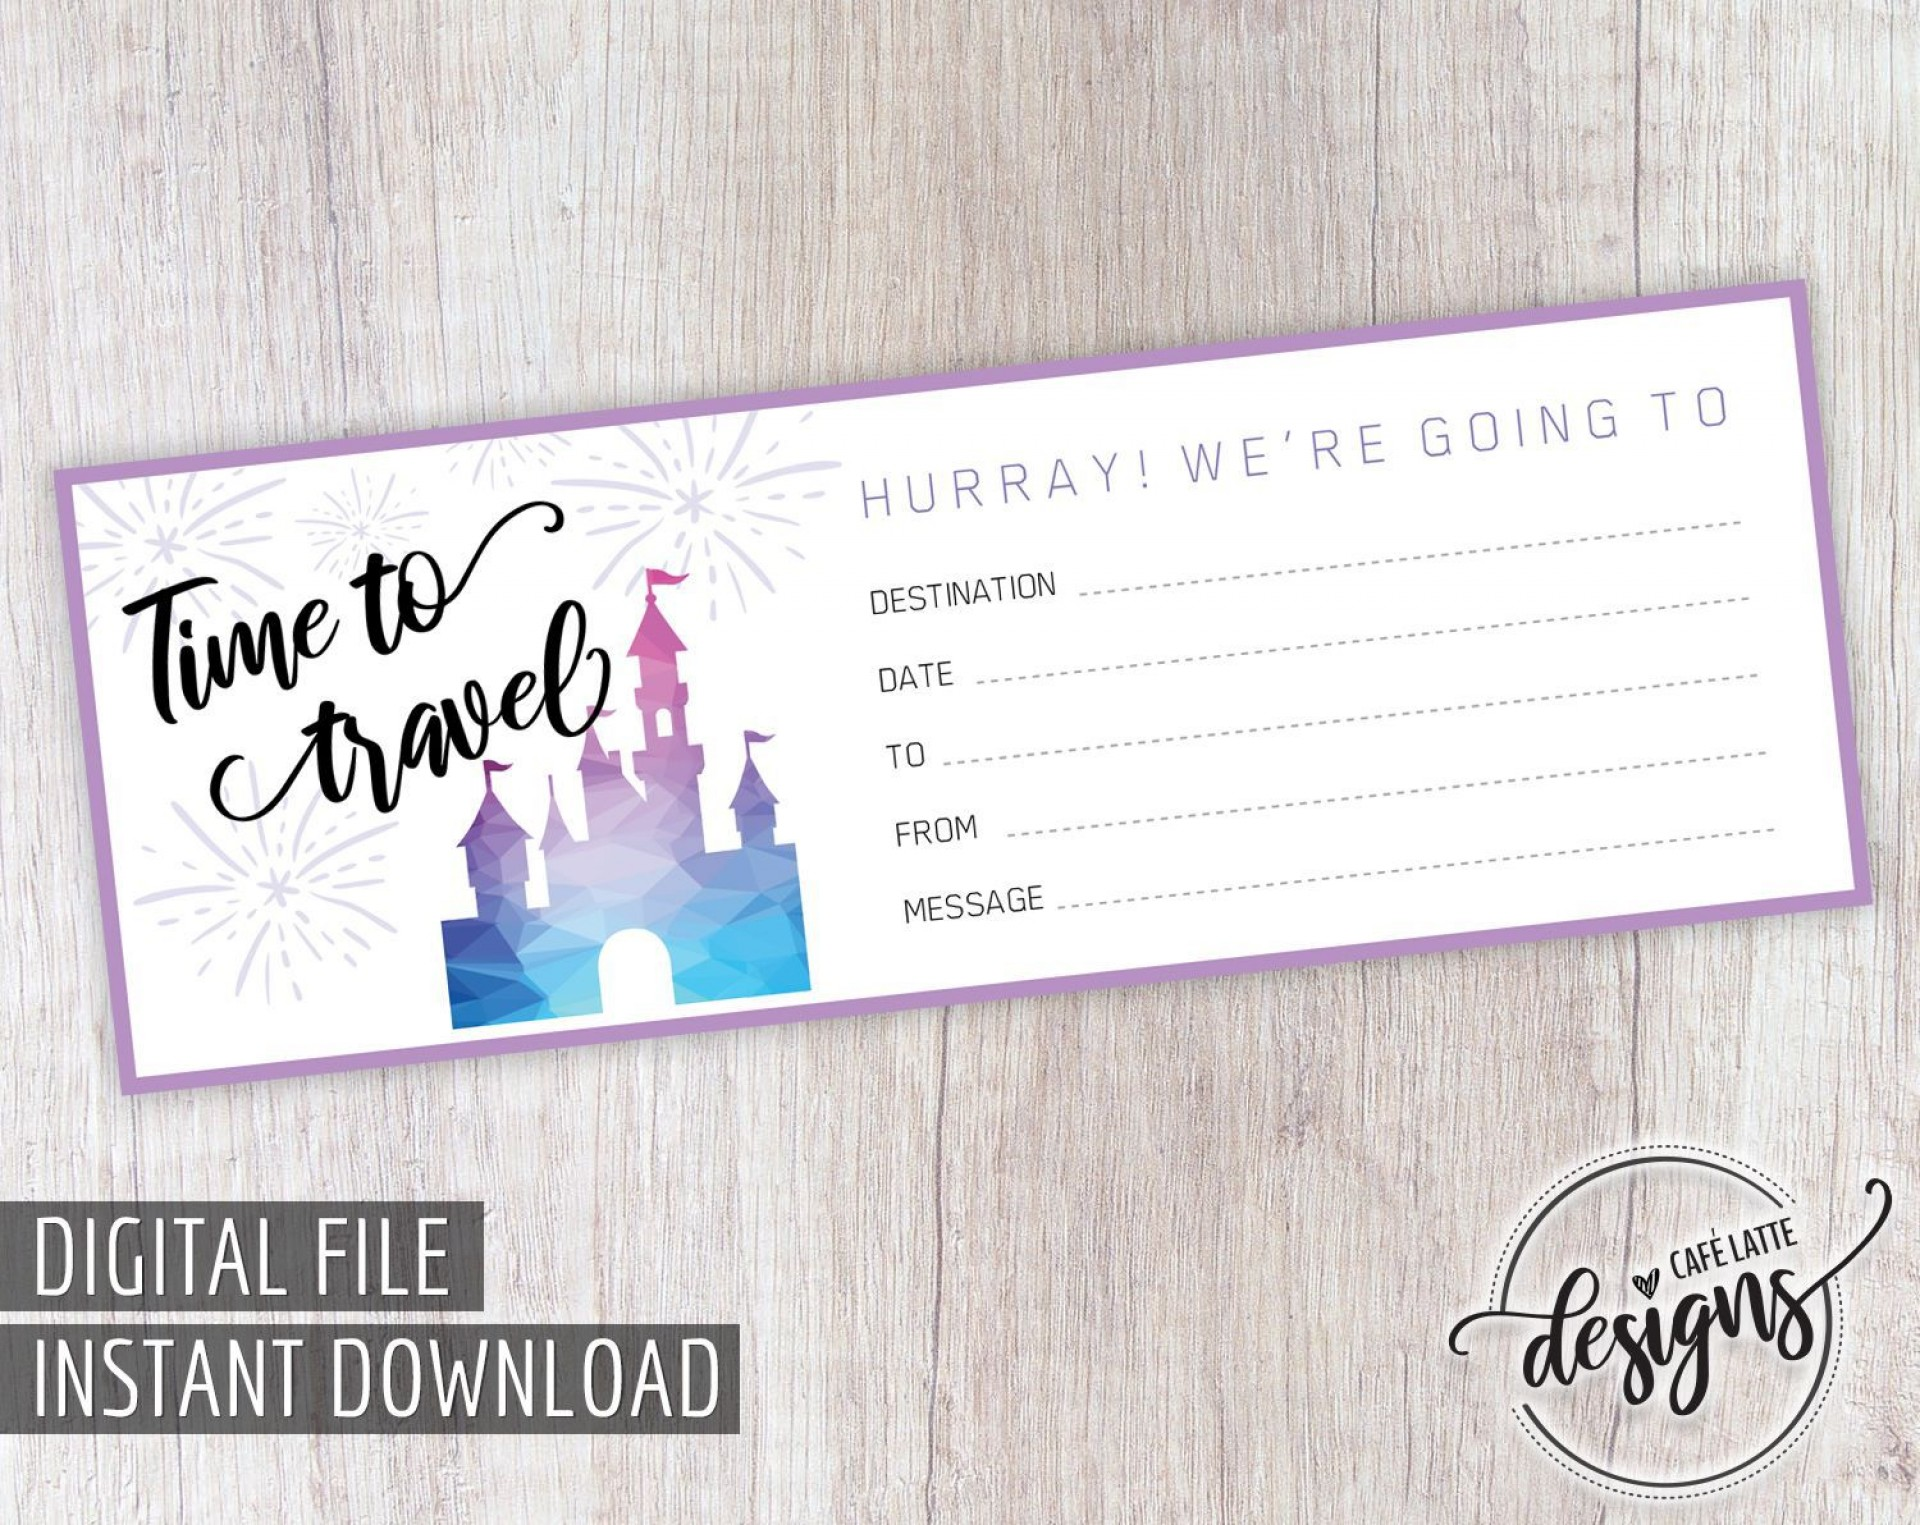 000 Awful Blank Gift Certificate Template Highest Clarity  Free Printable Downloadable1920